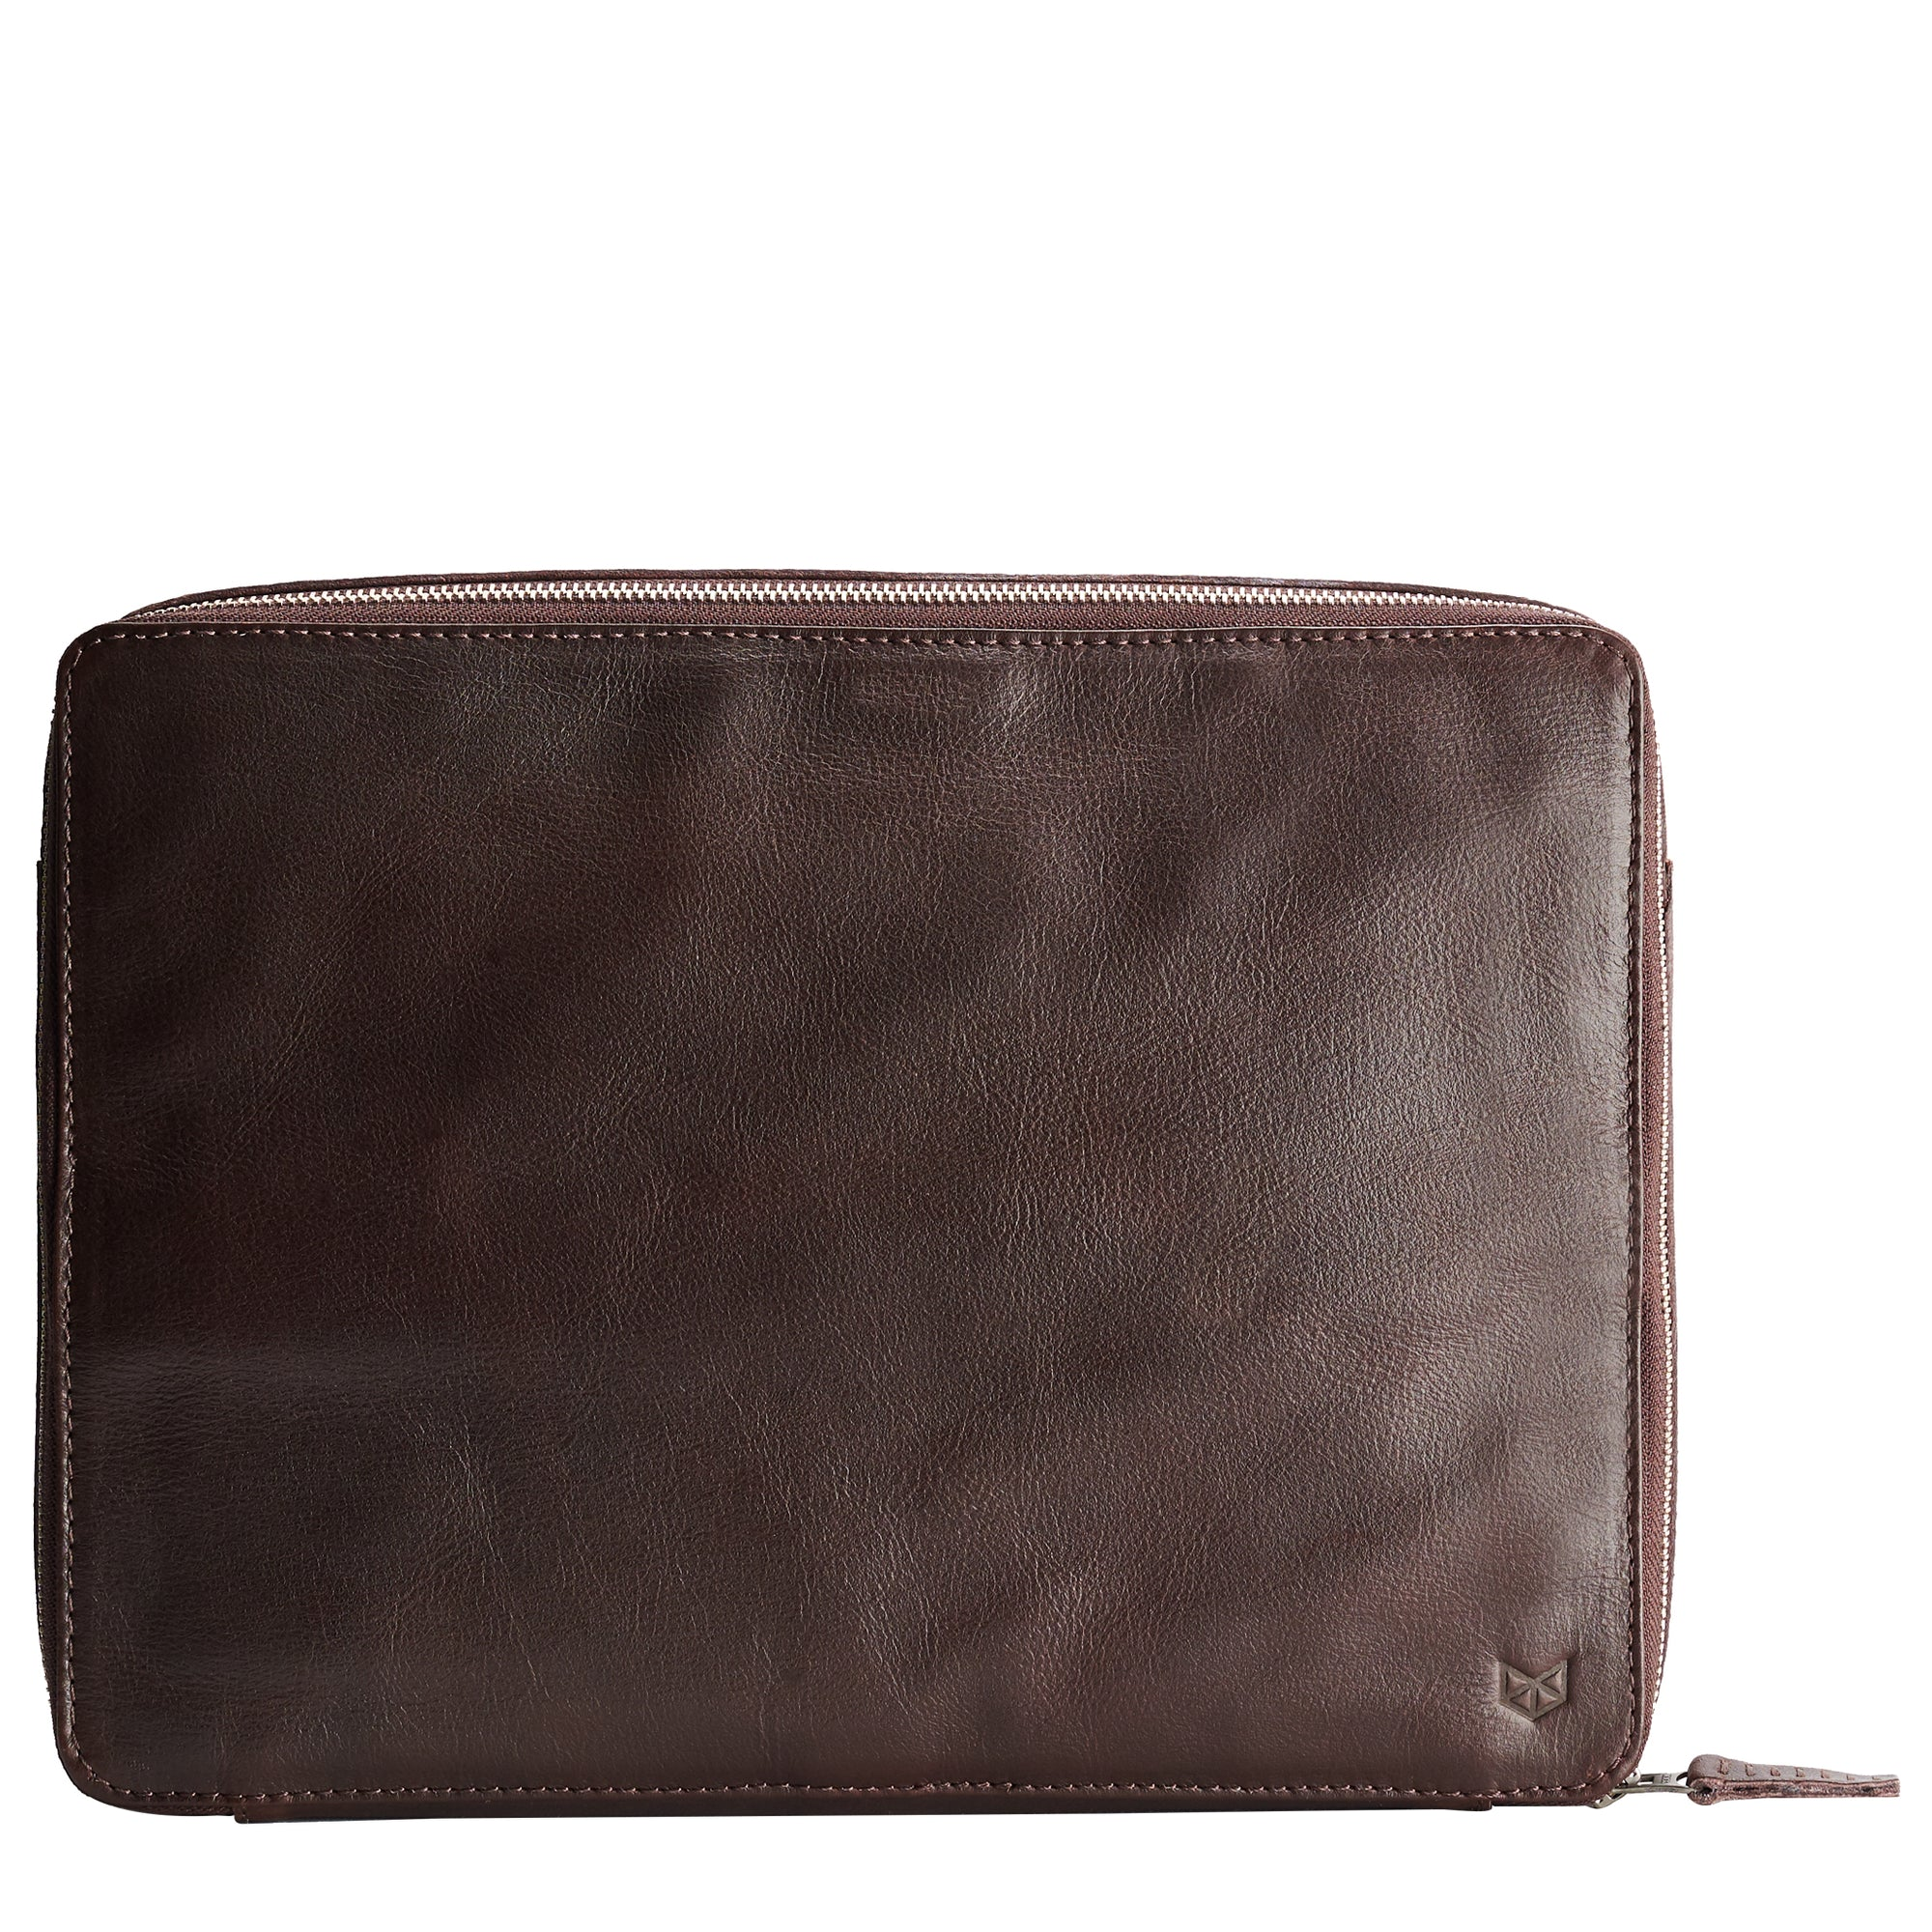 handmade dark brown tech laptop tablet bag is perfect for a business travel.